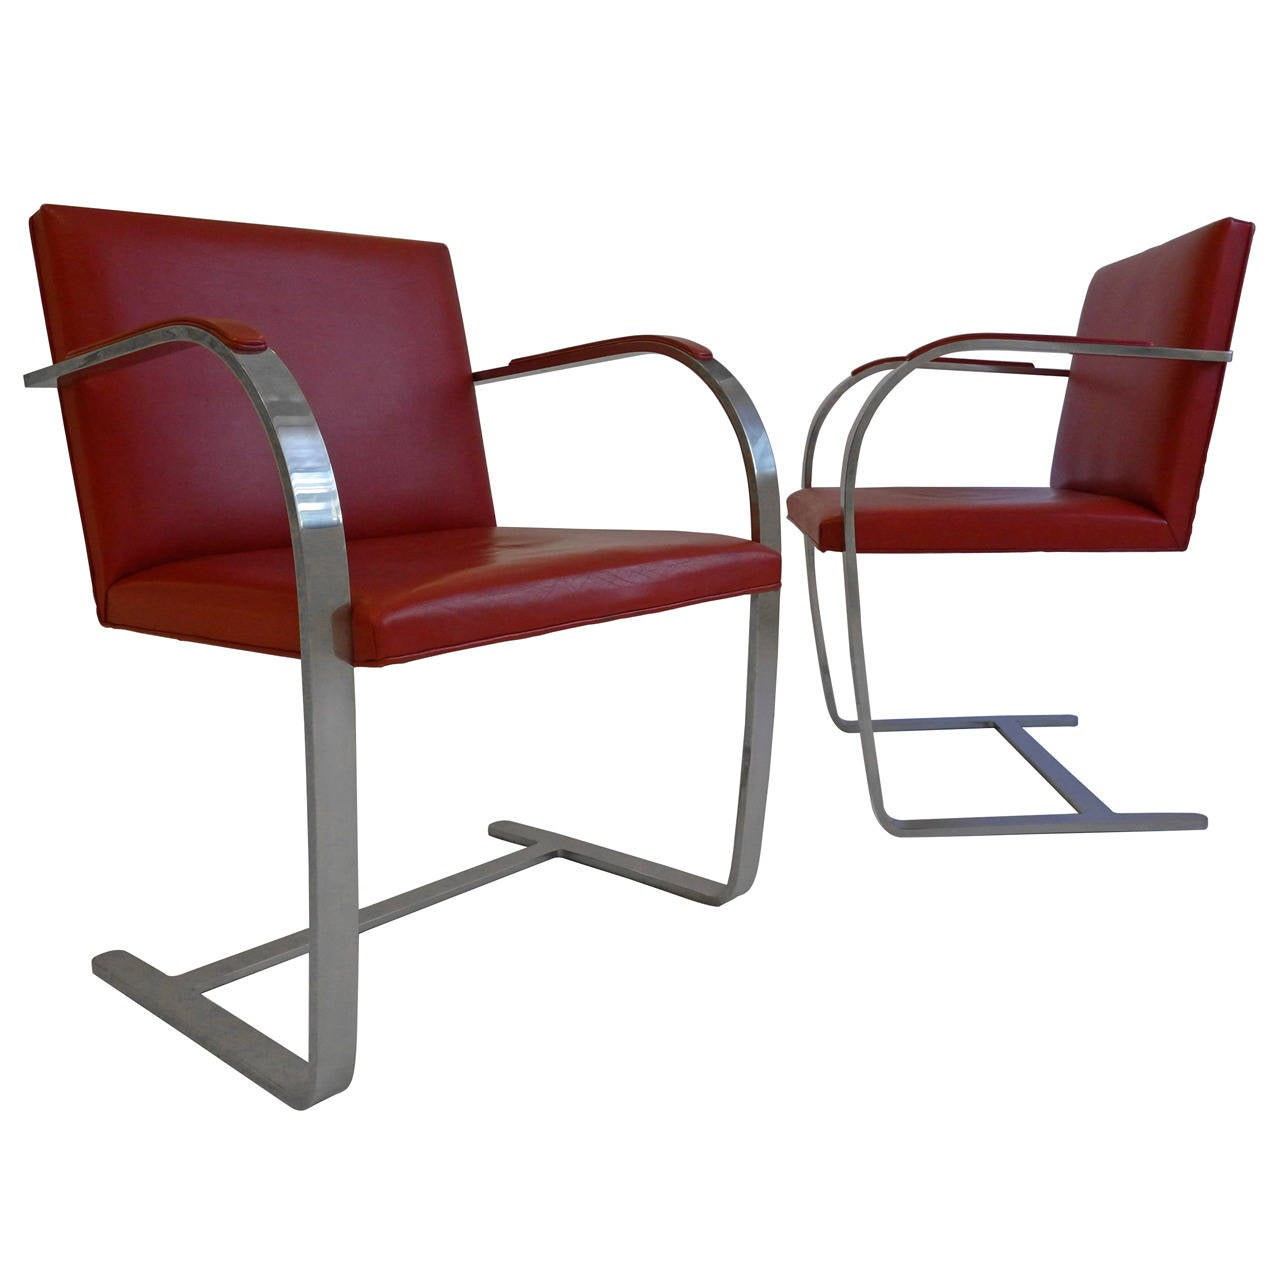 Vintage Pair of Knoll Brno Chairs in Red Leather at 44stdibs | brno furniture fair